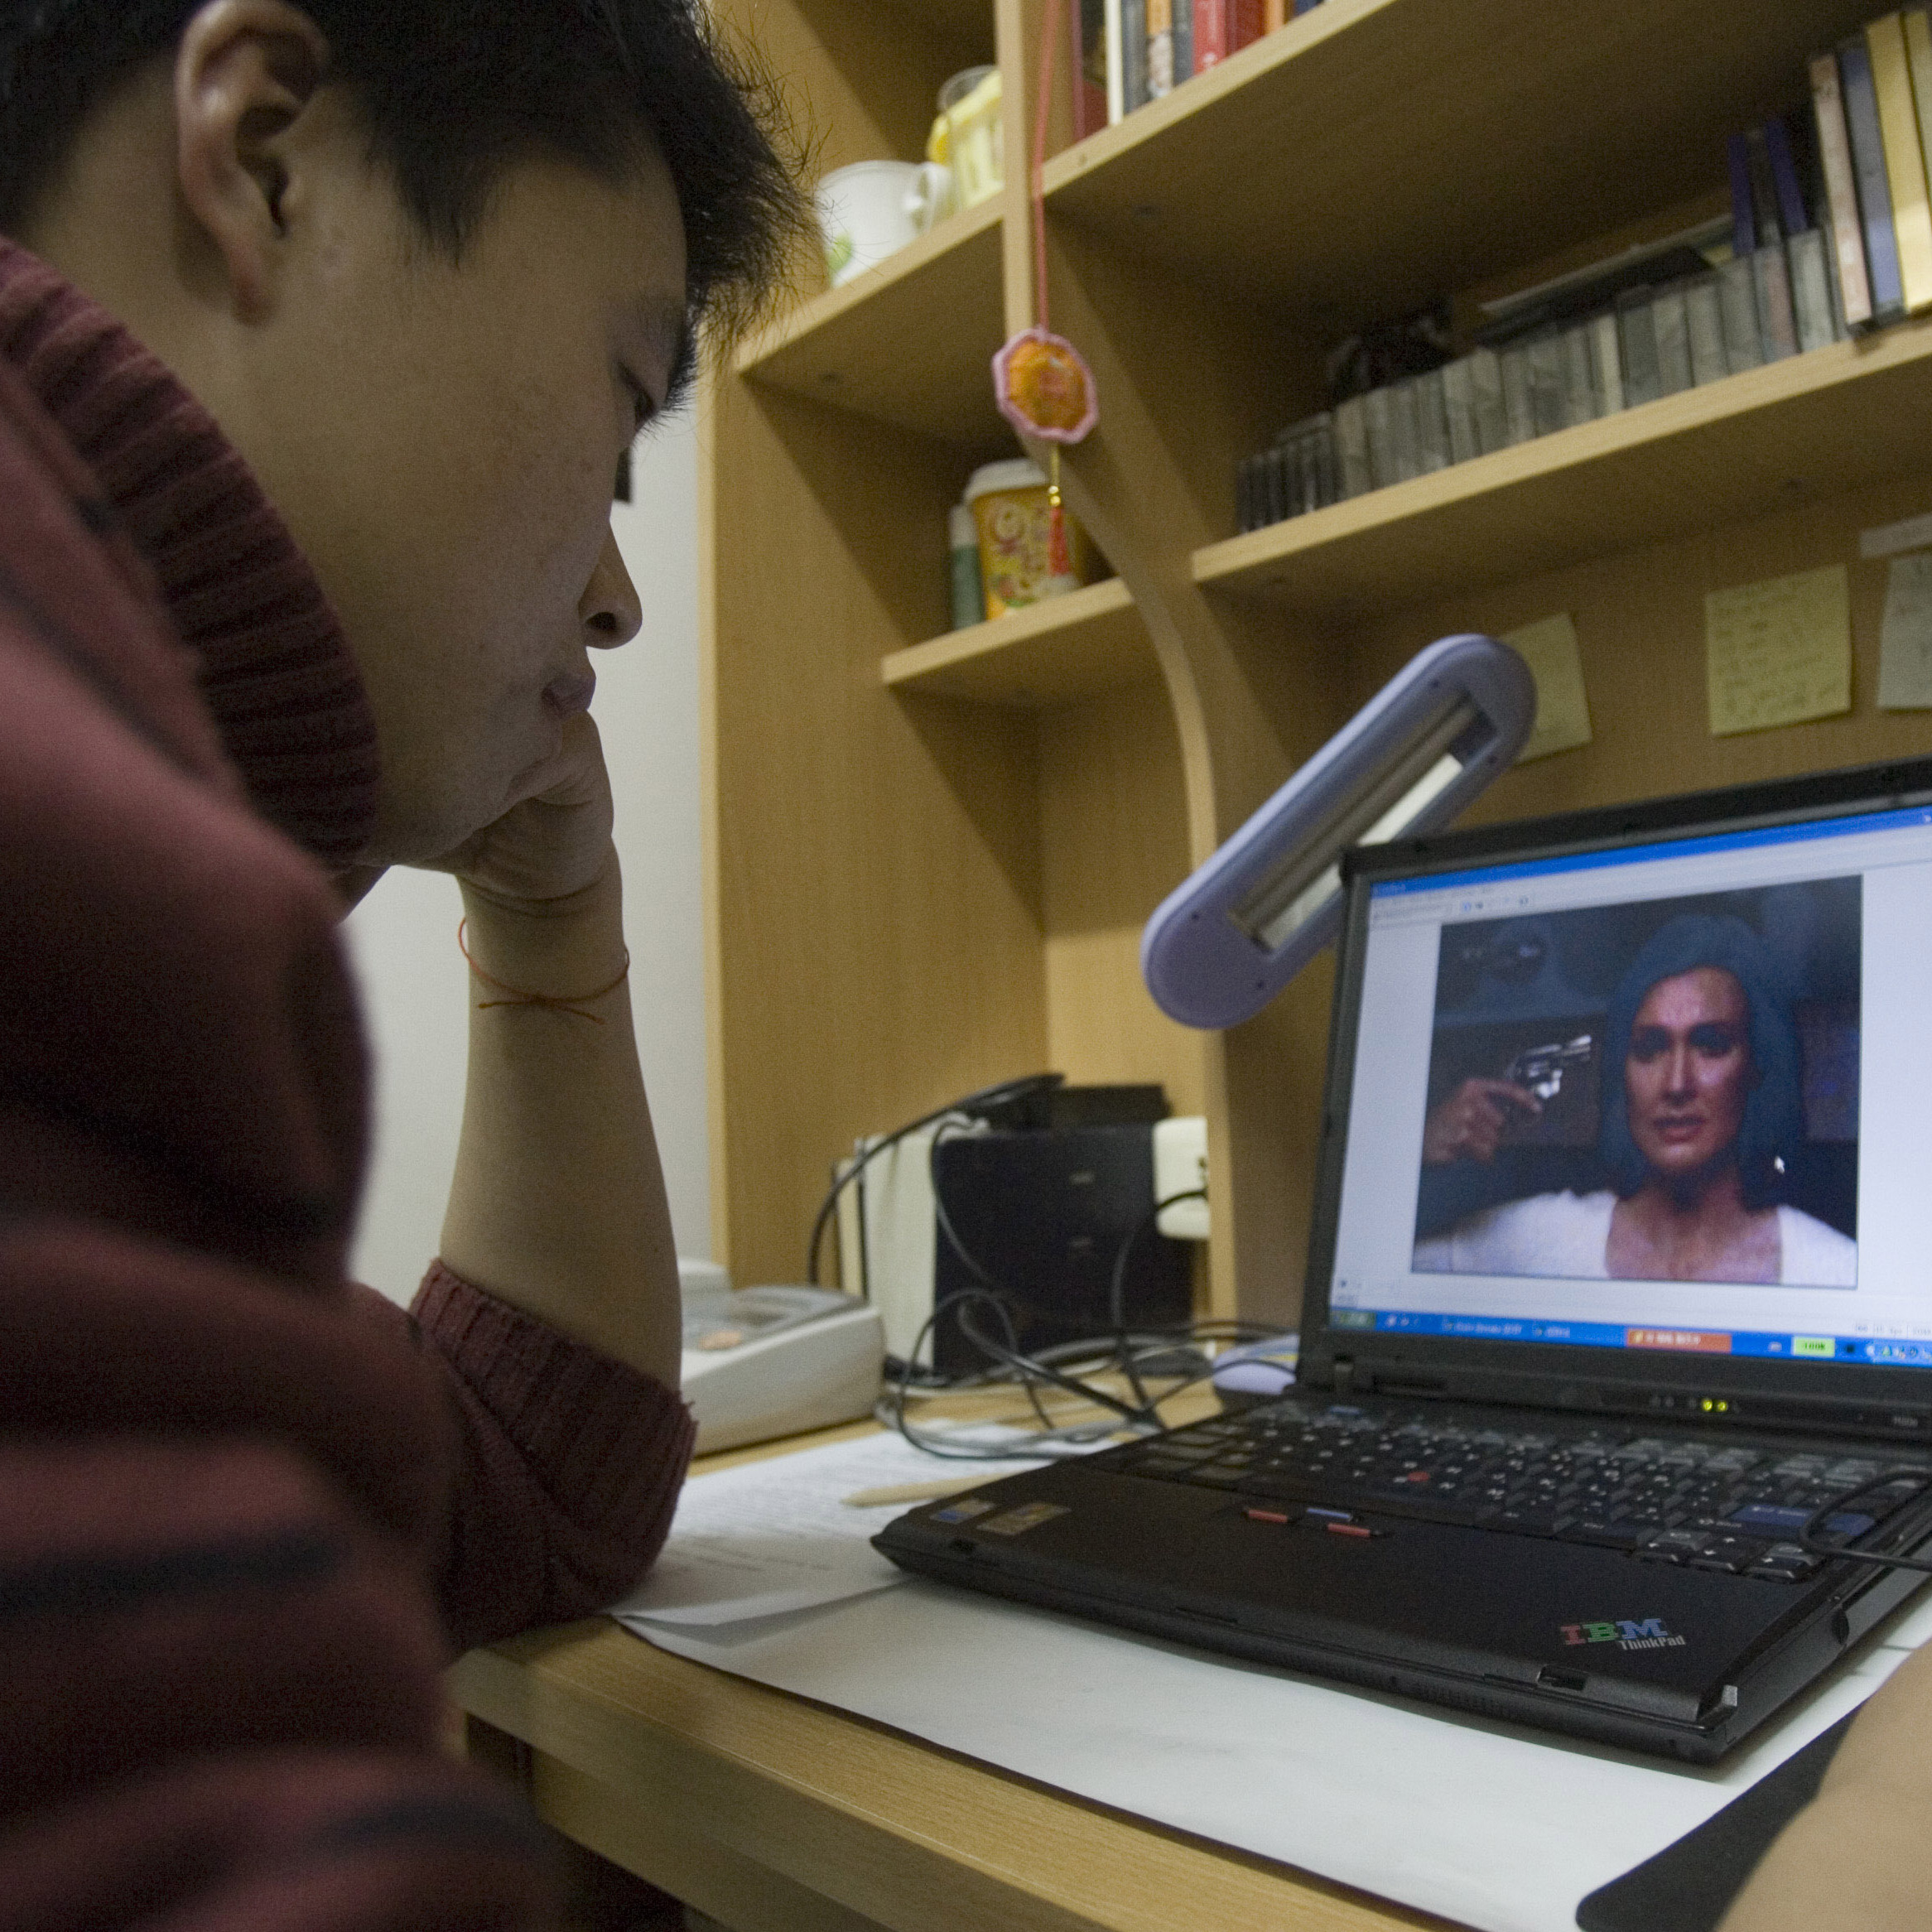 A student at Peking University watches an episode of American TV series Desperate Housewives online in Beijing on Dec. 19, 2005.